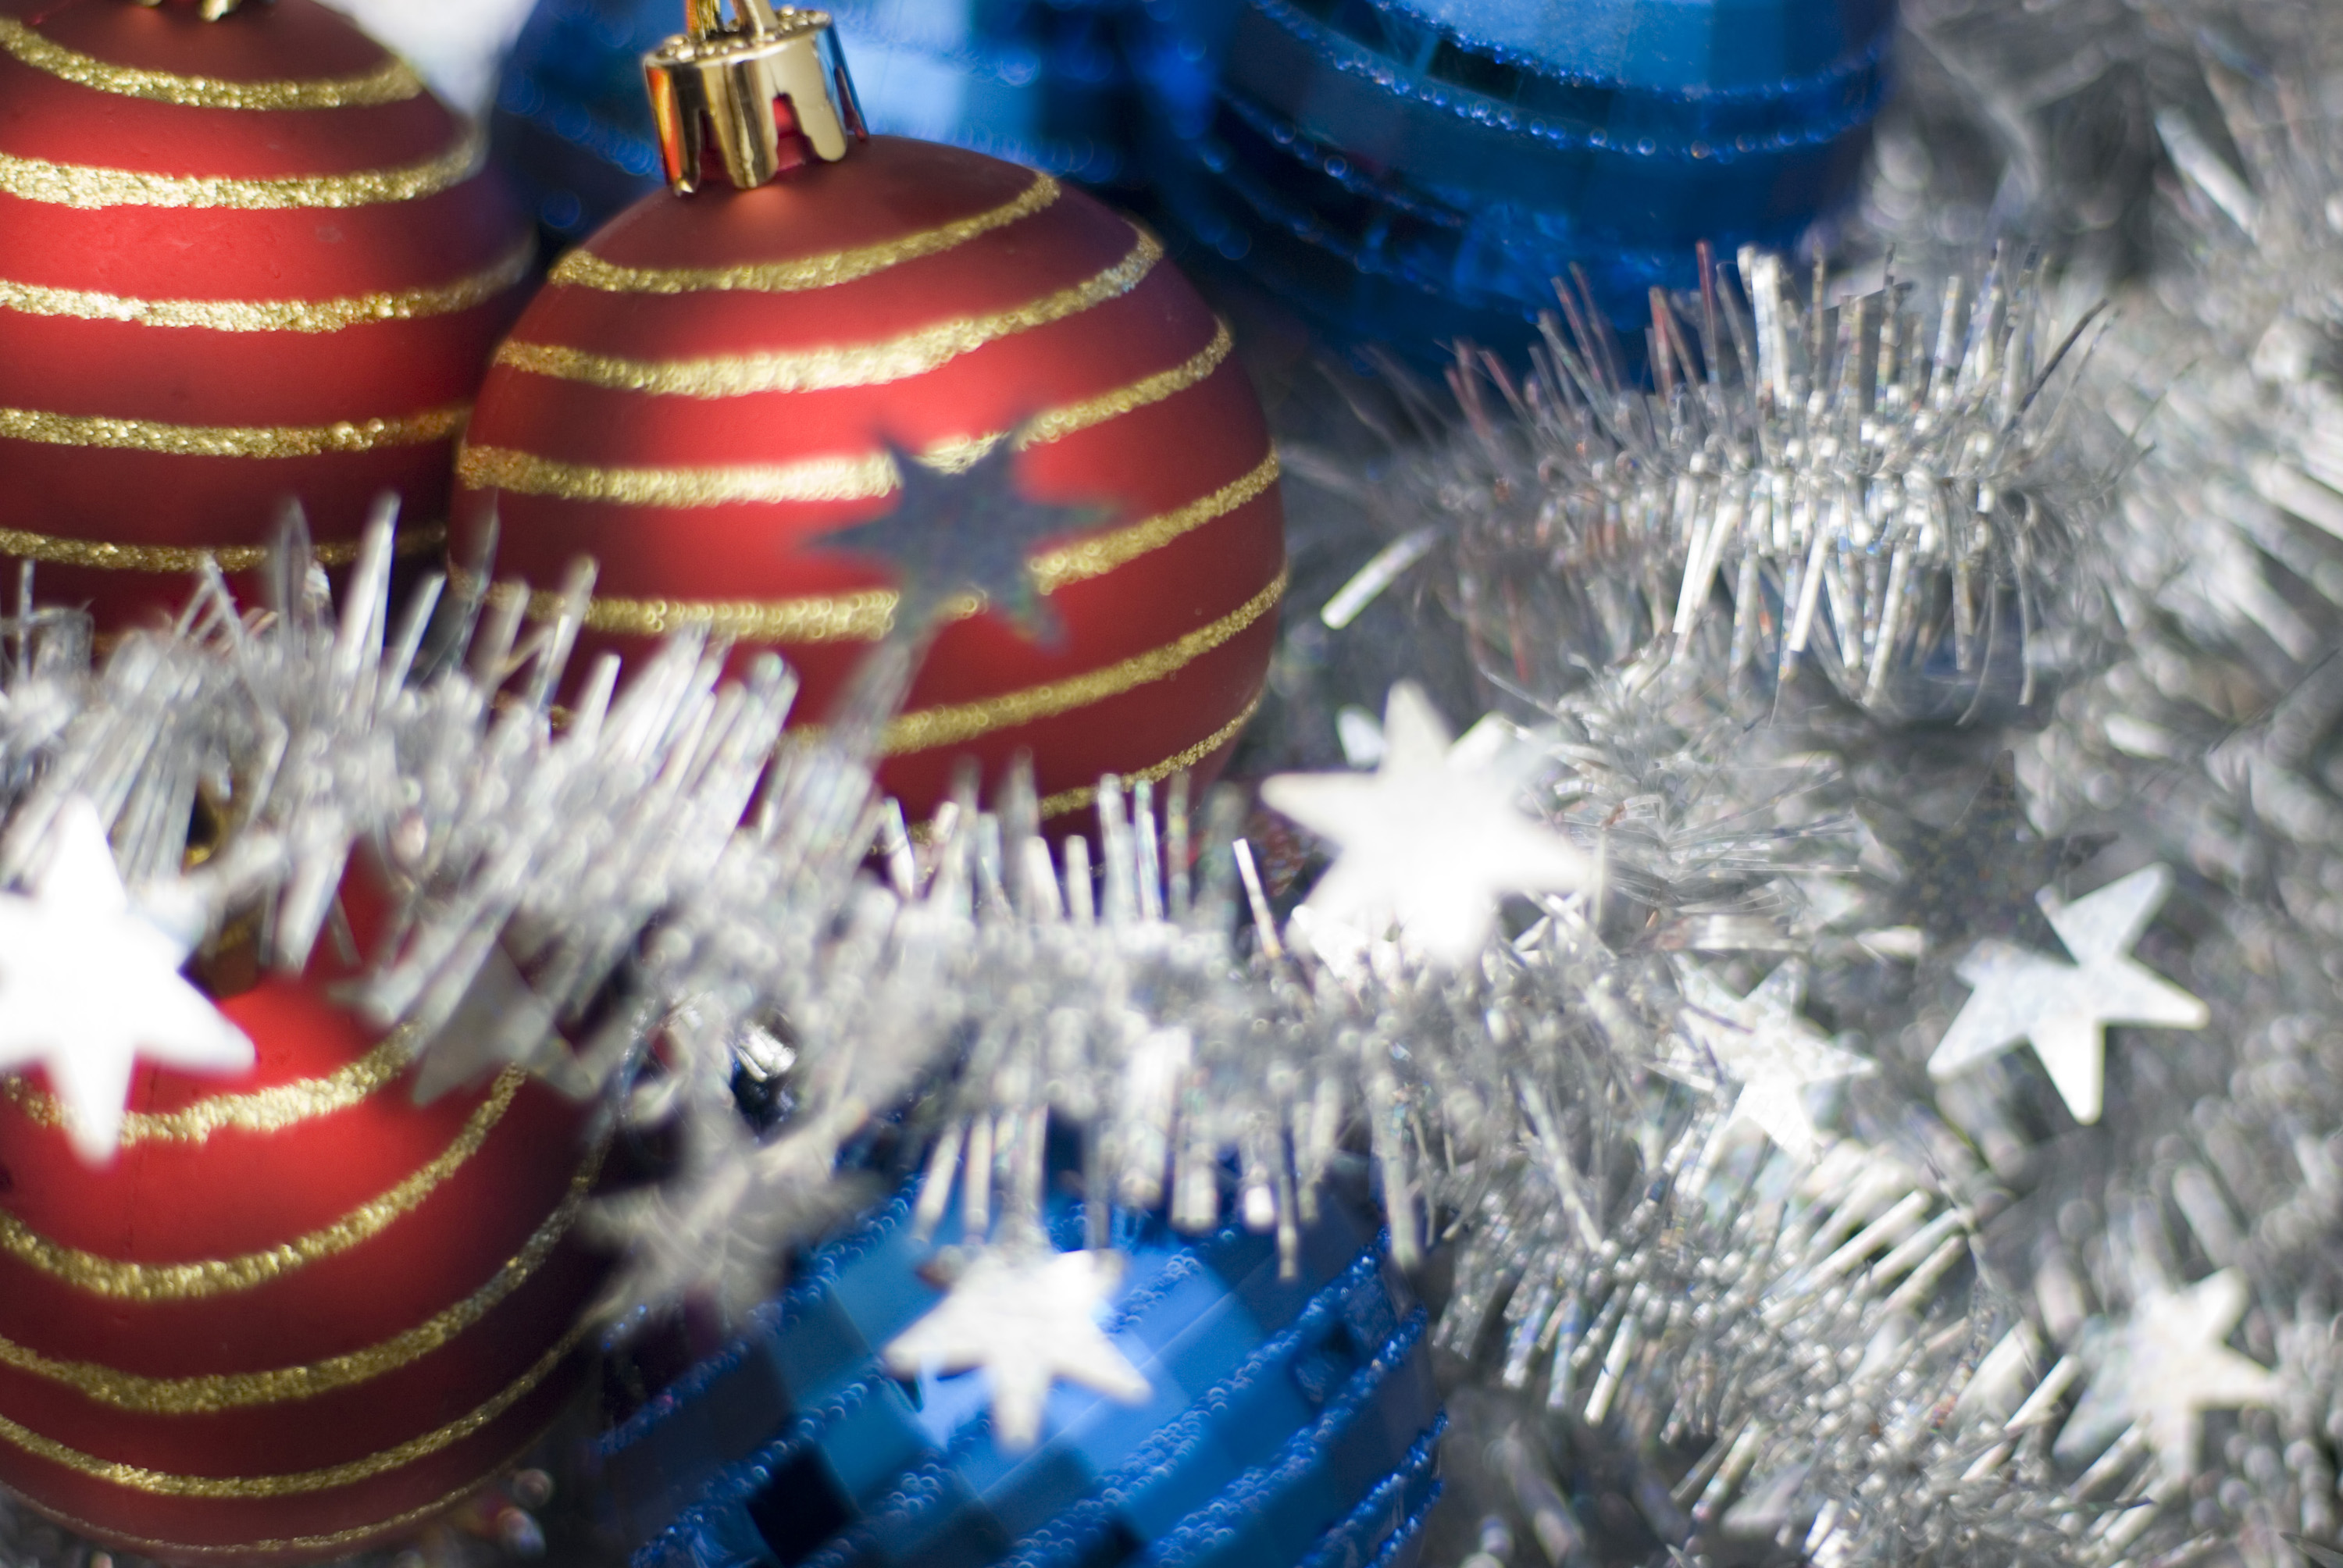 blue and red festive baubles on a background of tinsel, pictured with a narrow depth of field